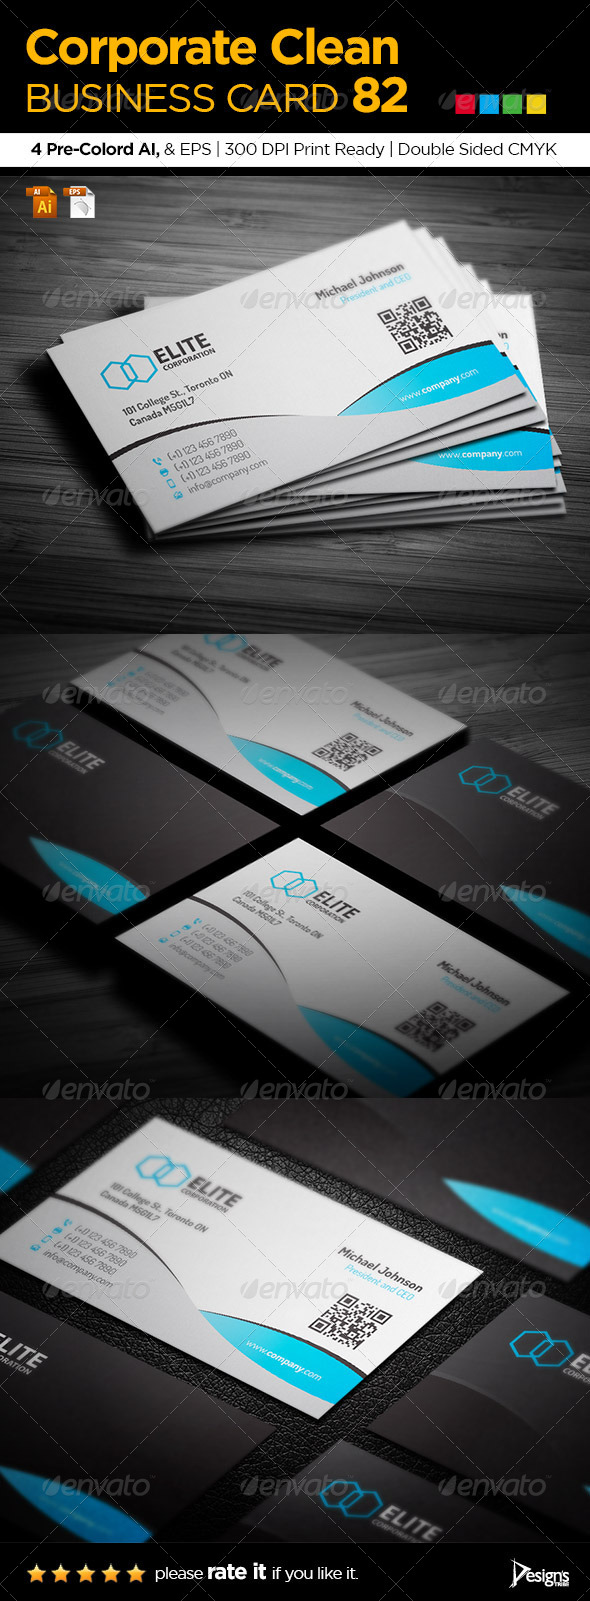 Corporate Clean Business Card 82 - Business Cards Print Templates